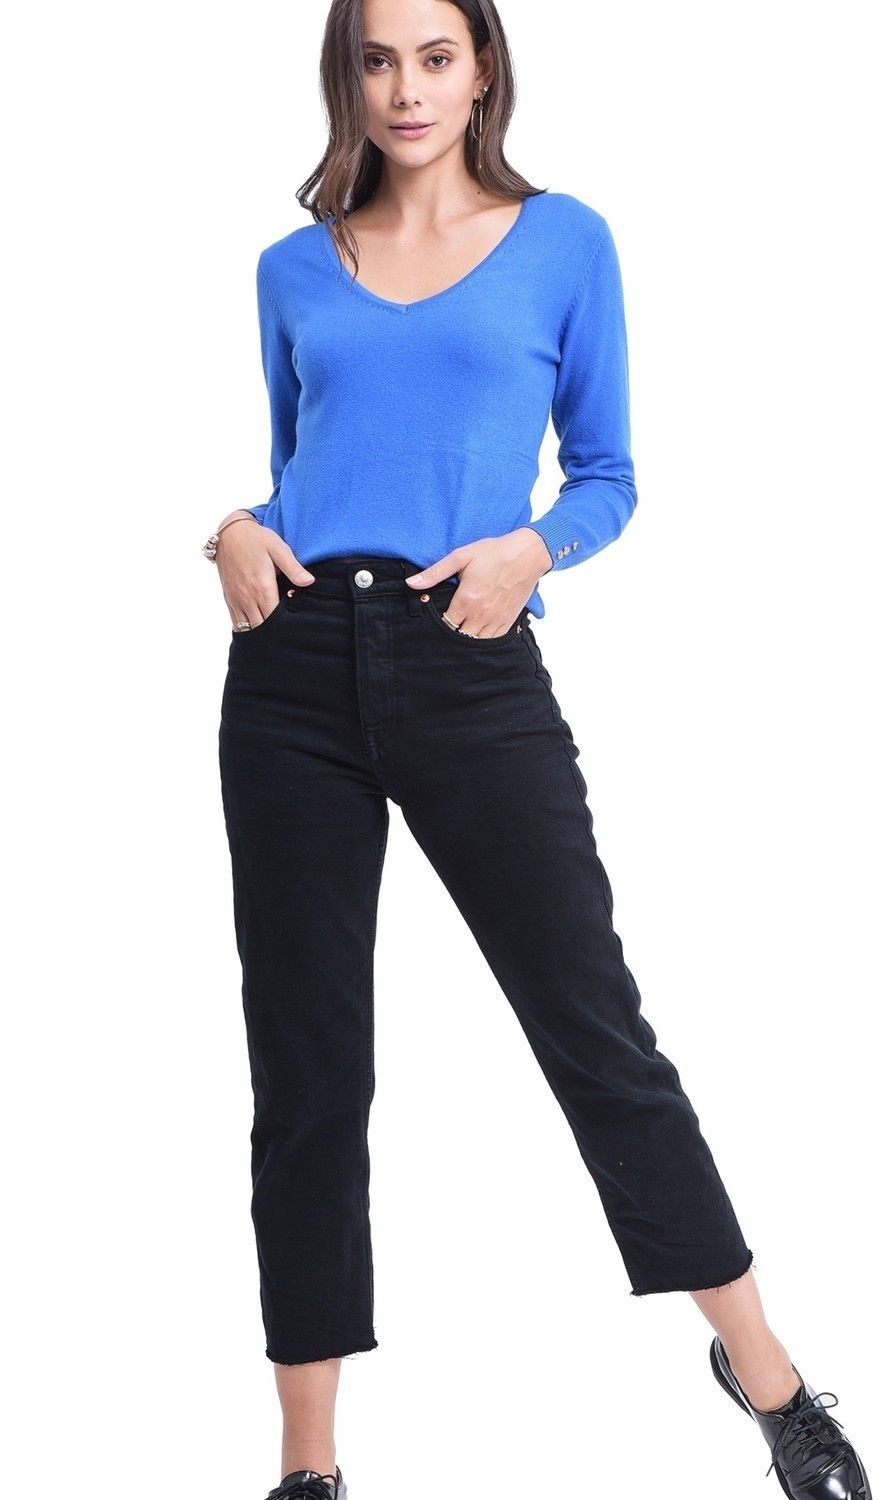 C&JO V-neck Sweater with Buttoned Sleeves in Blue